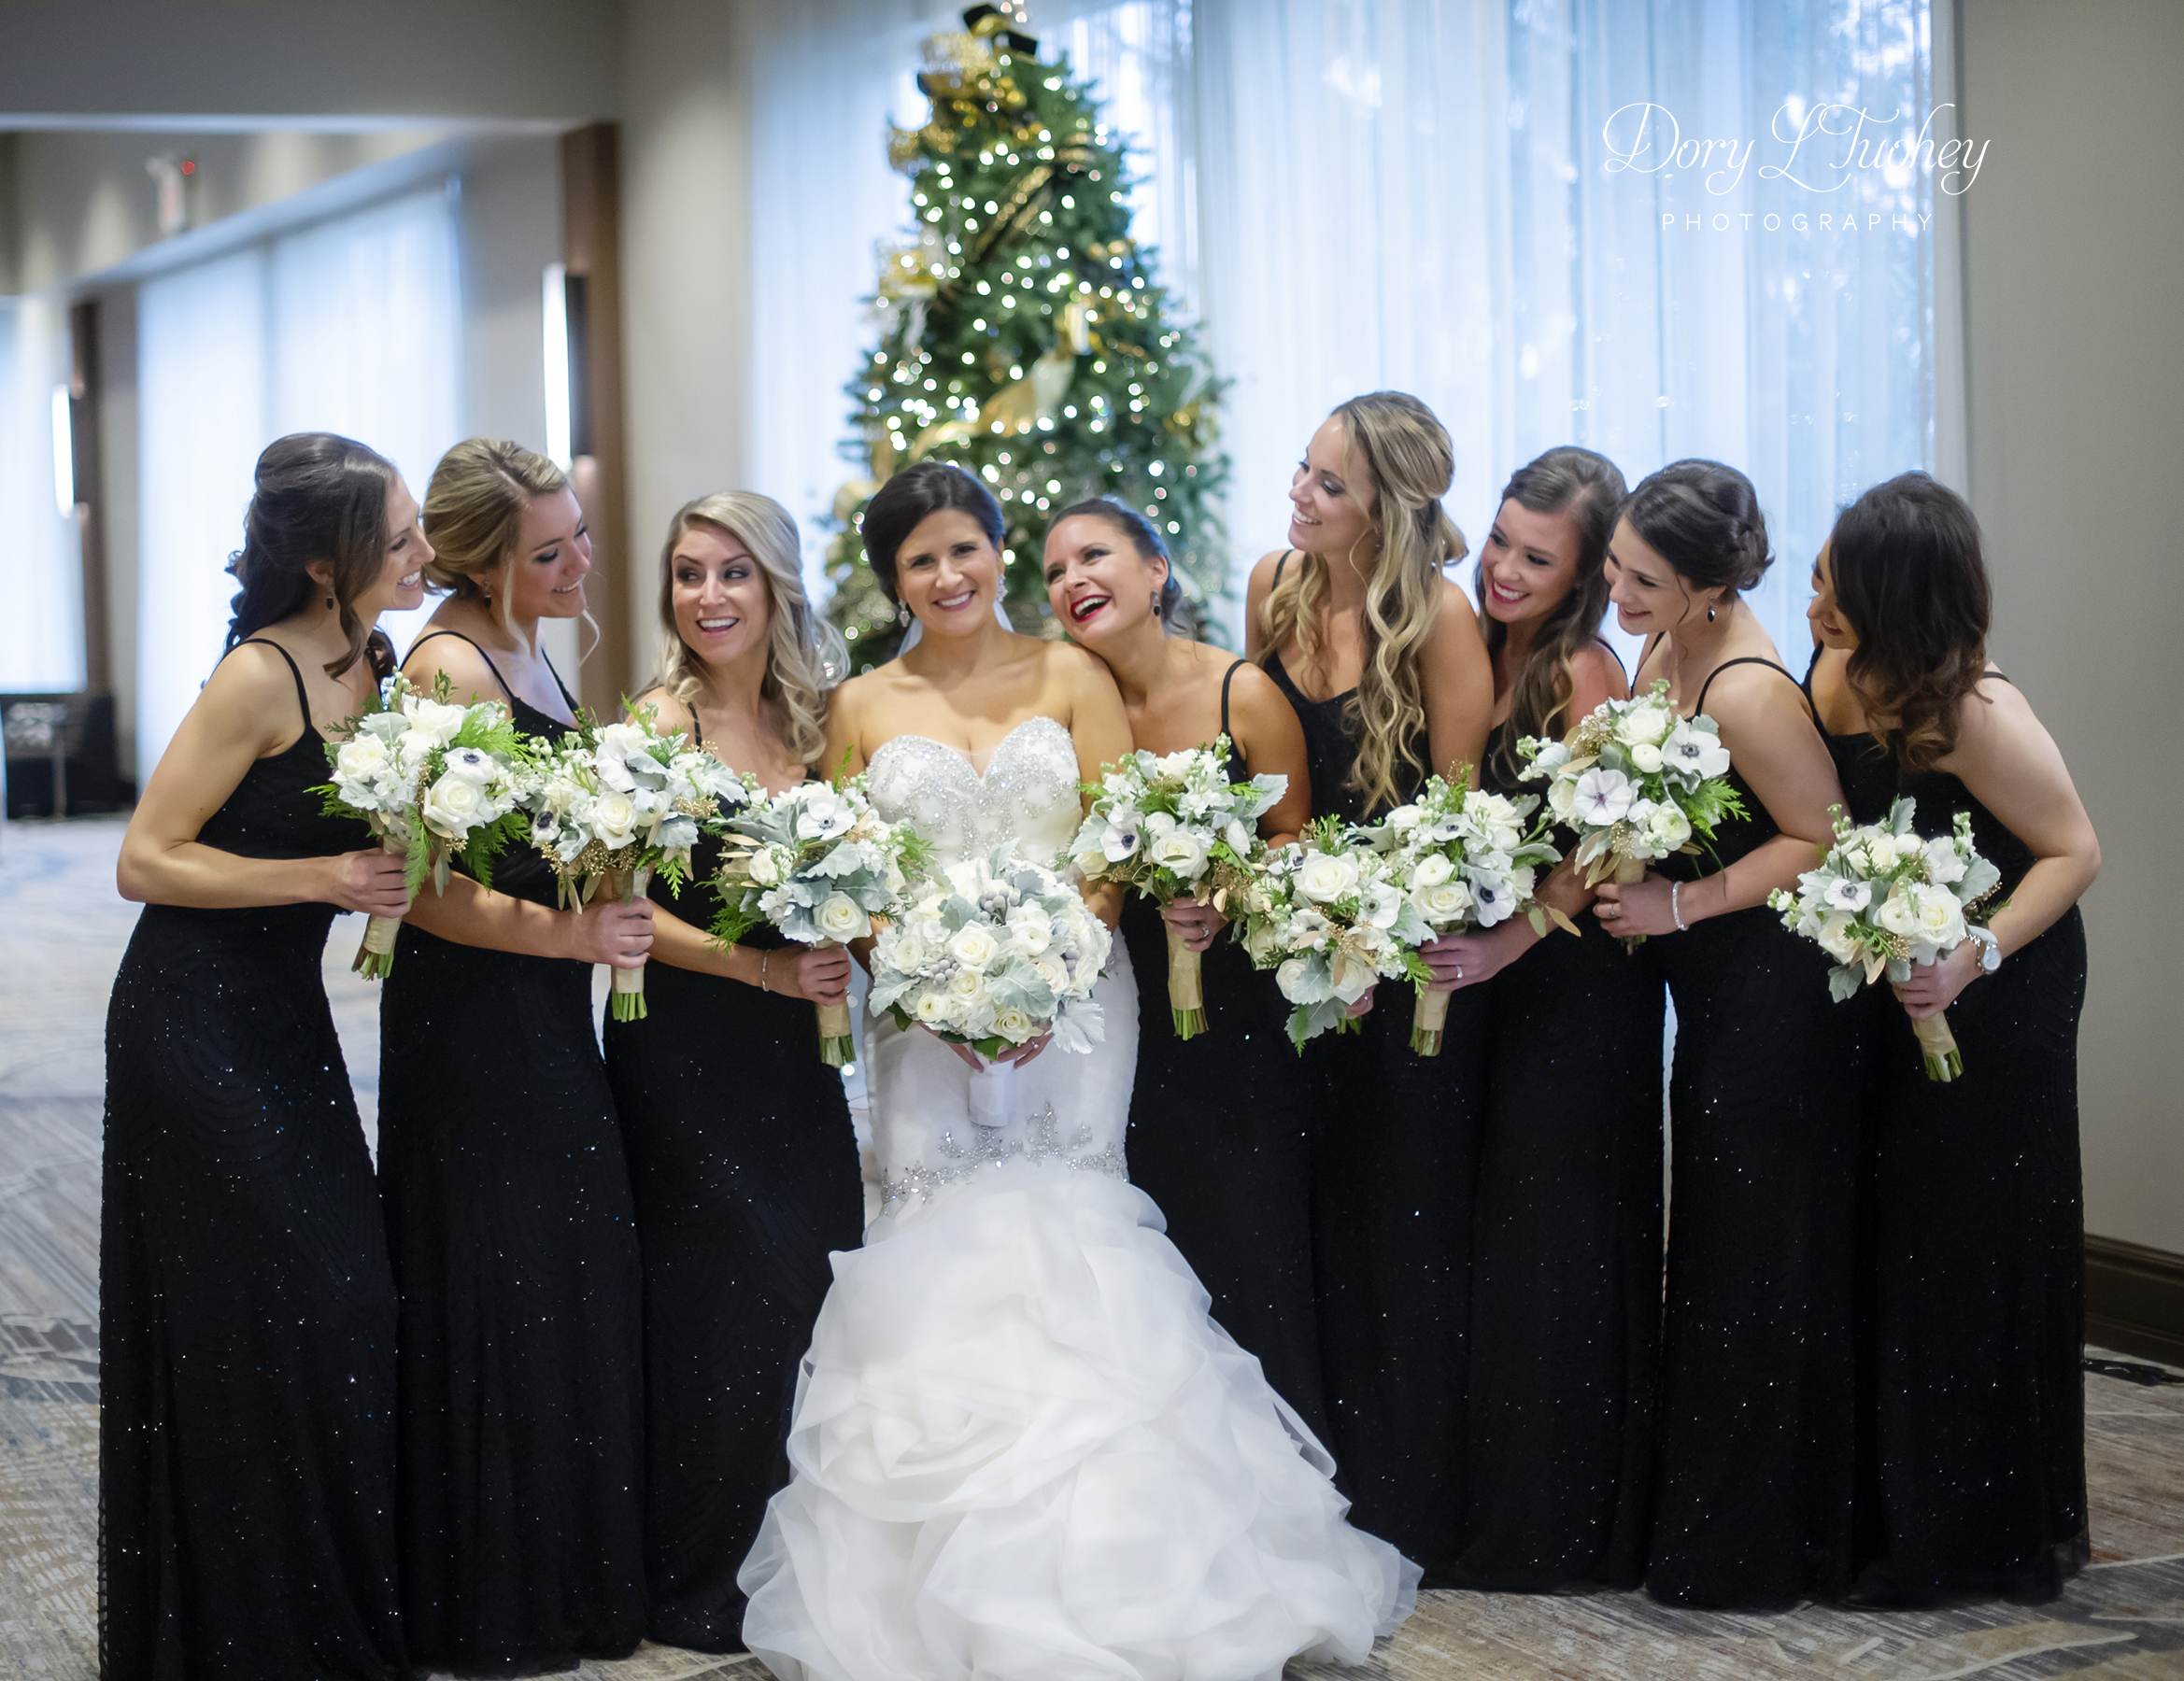 Burr_ridge__wedding_marriott_dory_photographer_illinois_gold_new_years_eve_nye_15.jpg